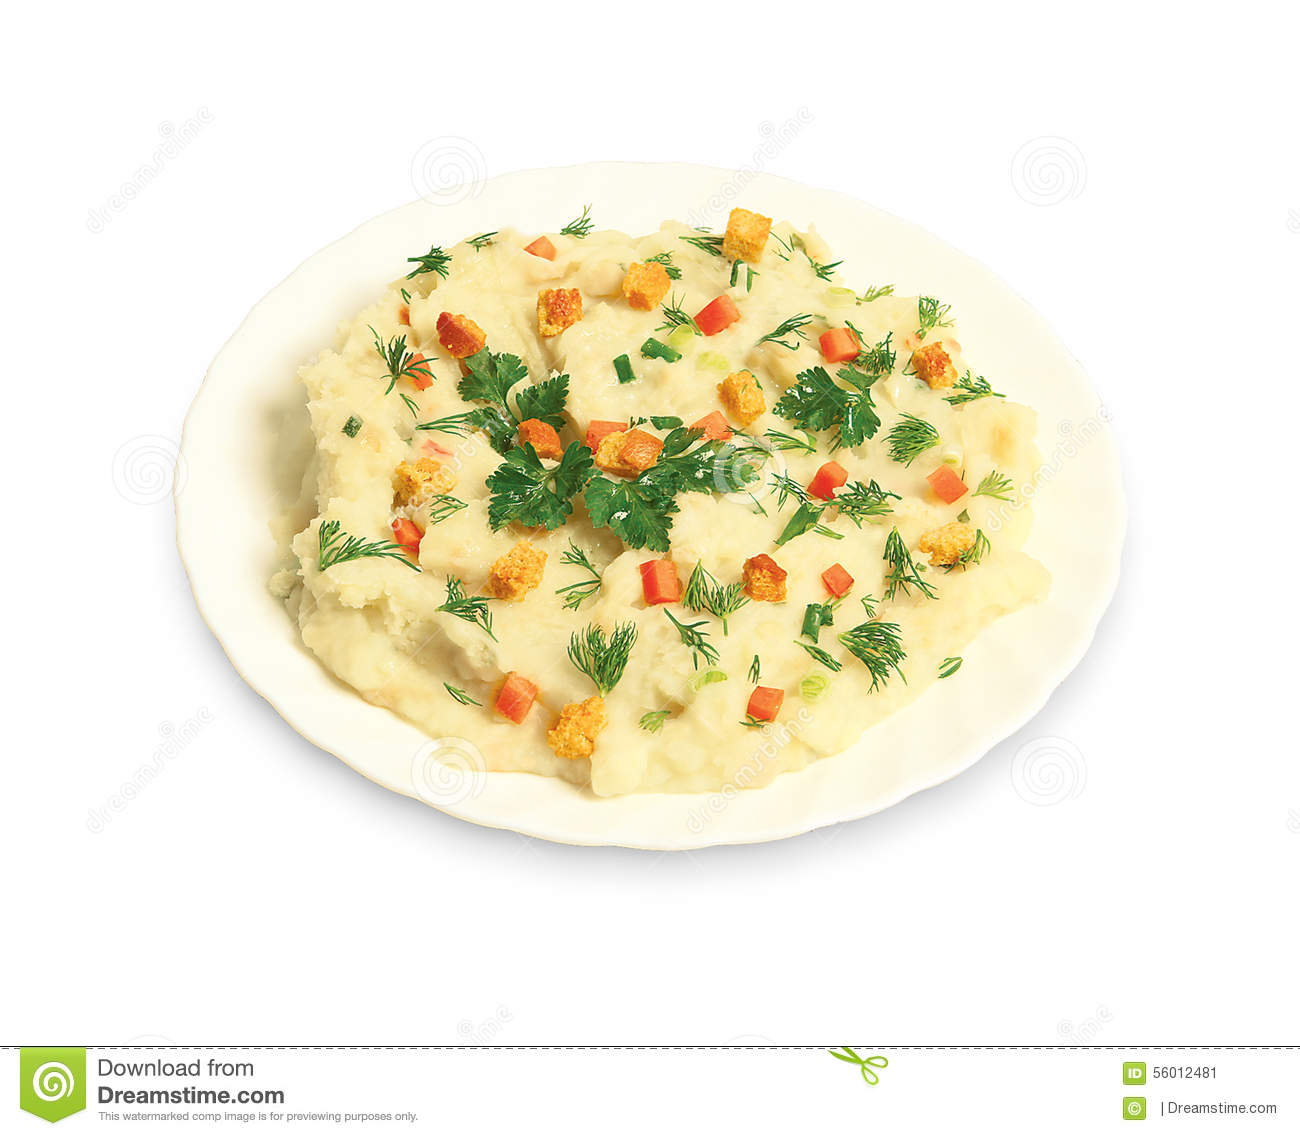 Mashed Potato Croutons Stock Photo - Image: 56012481